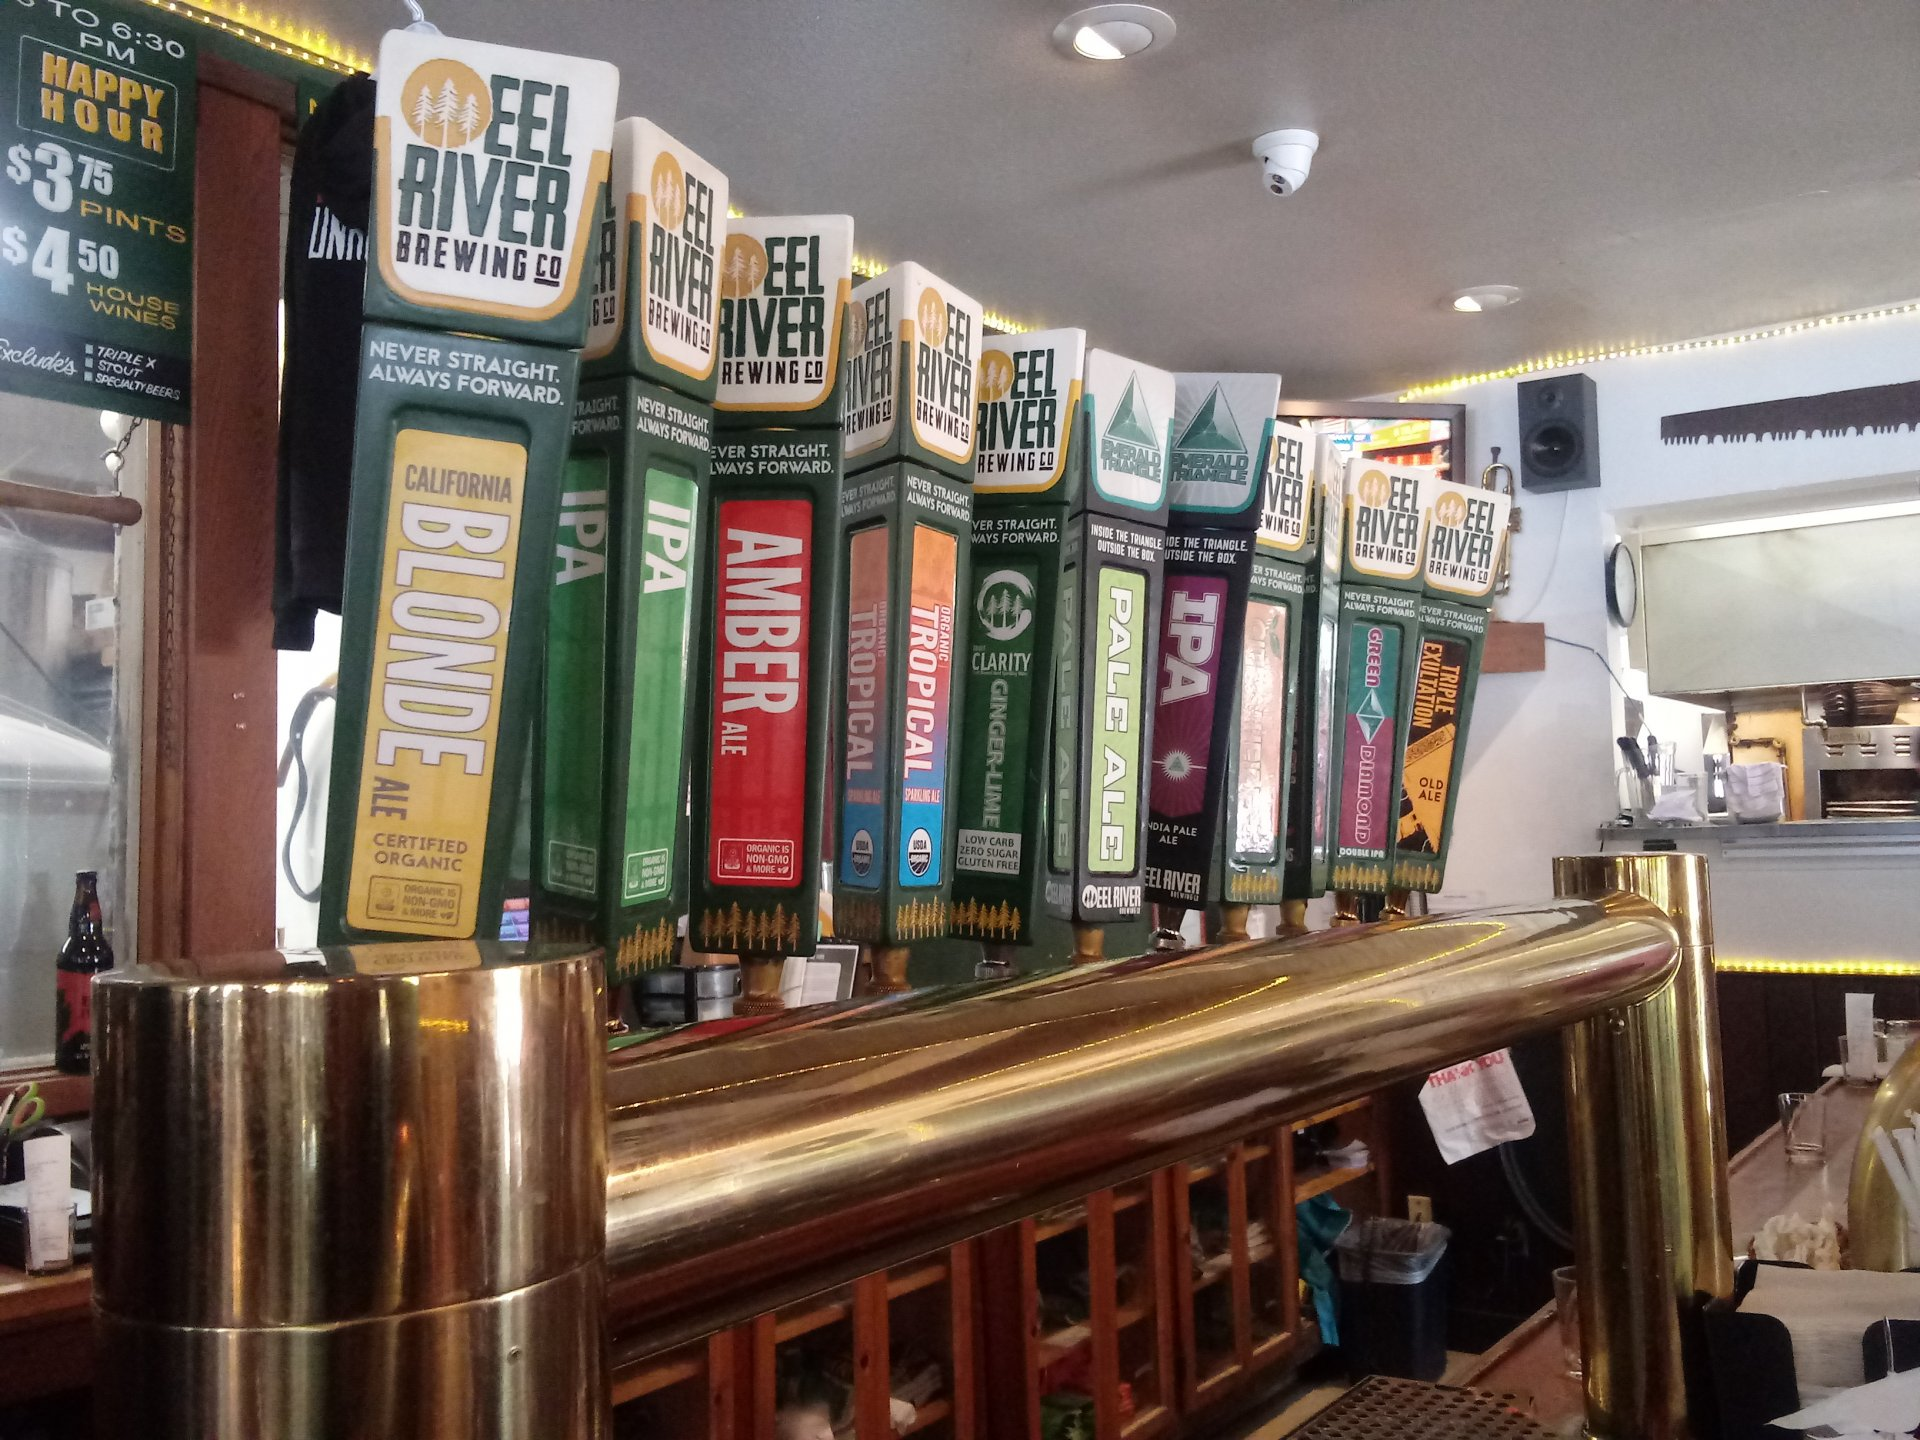 Row of taps at Eel River Brewing Co. in Fortuna on Jan. 28. | Photo by Alberto Muro